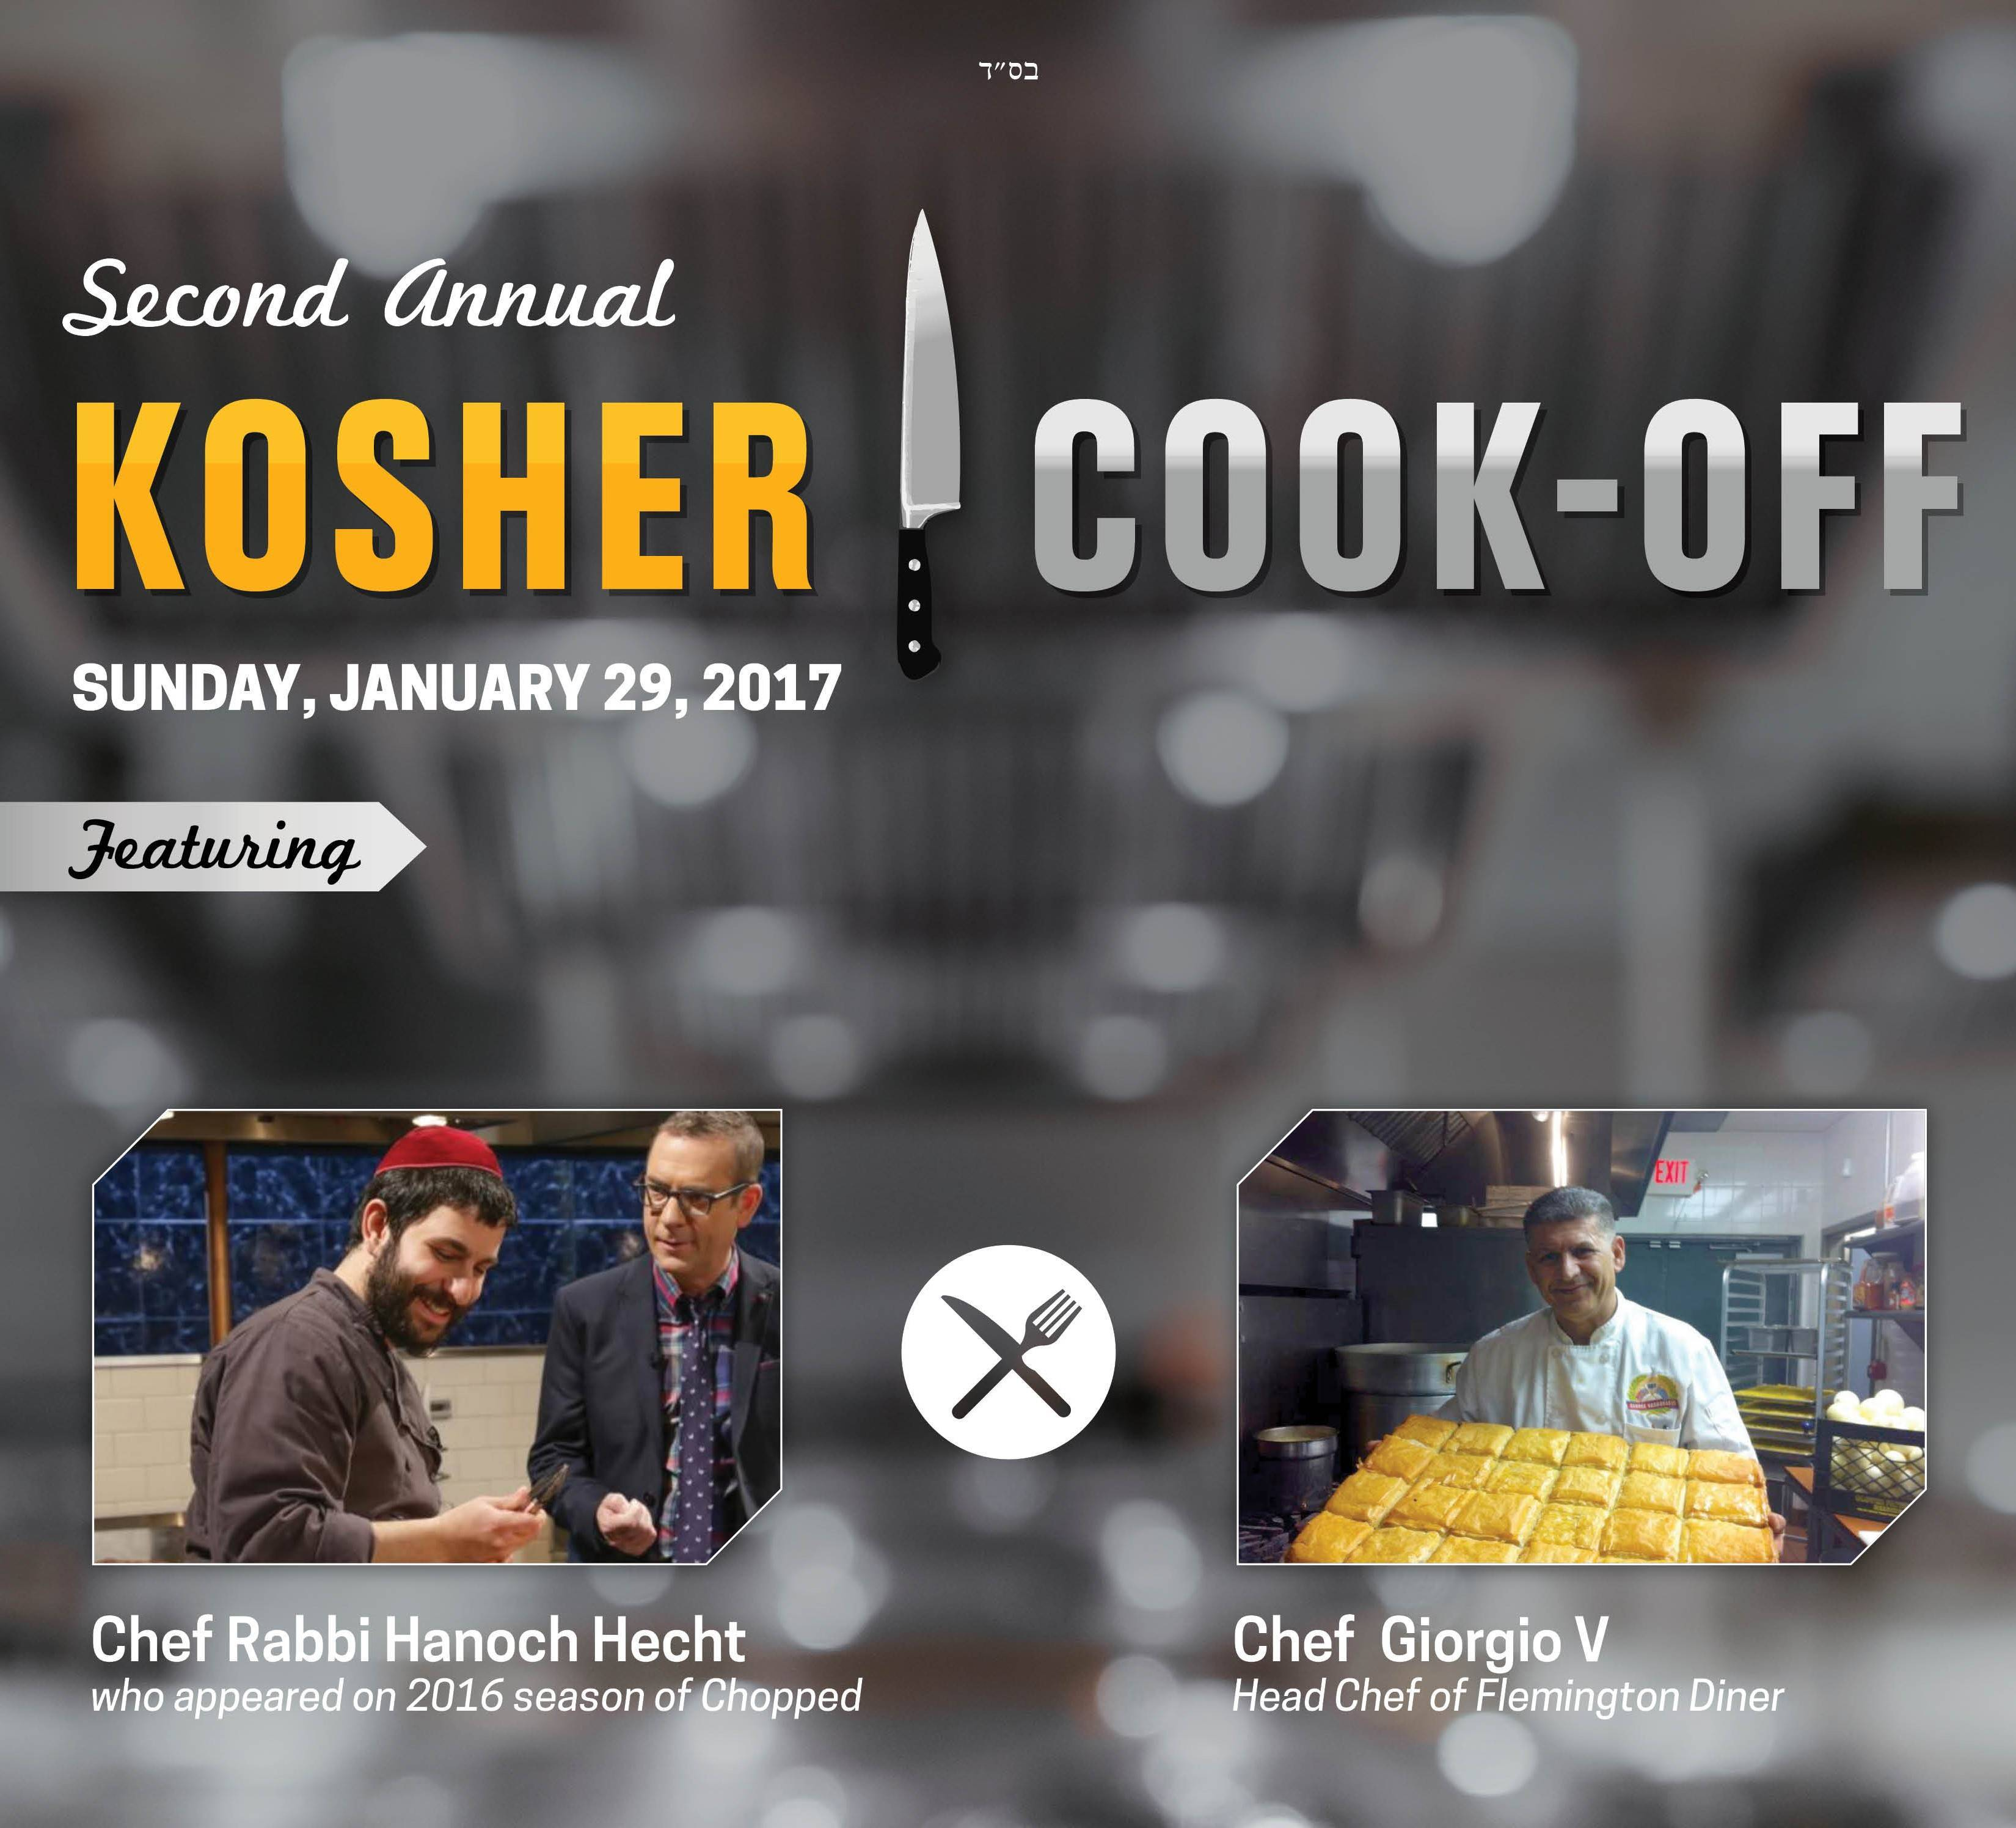 df089a1e651cc07abf5d_Kosher_Cookoff.jpg